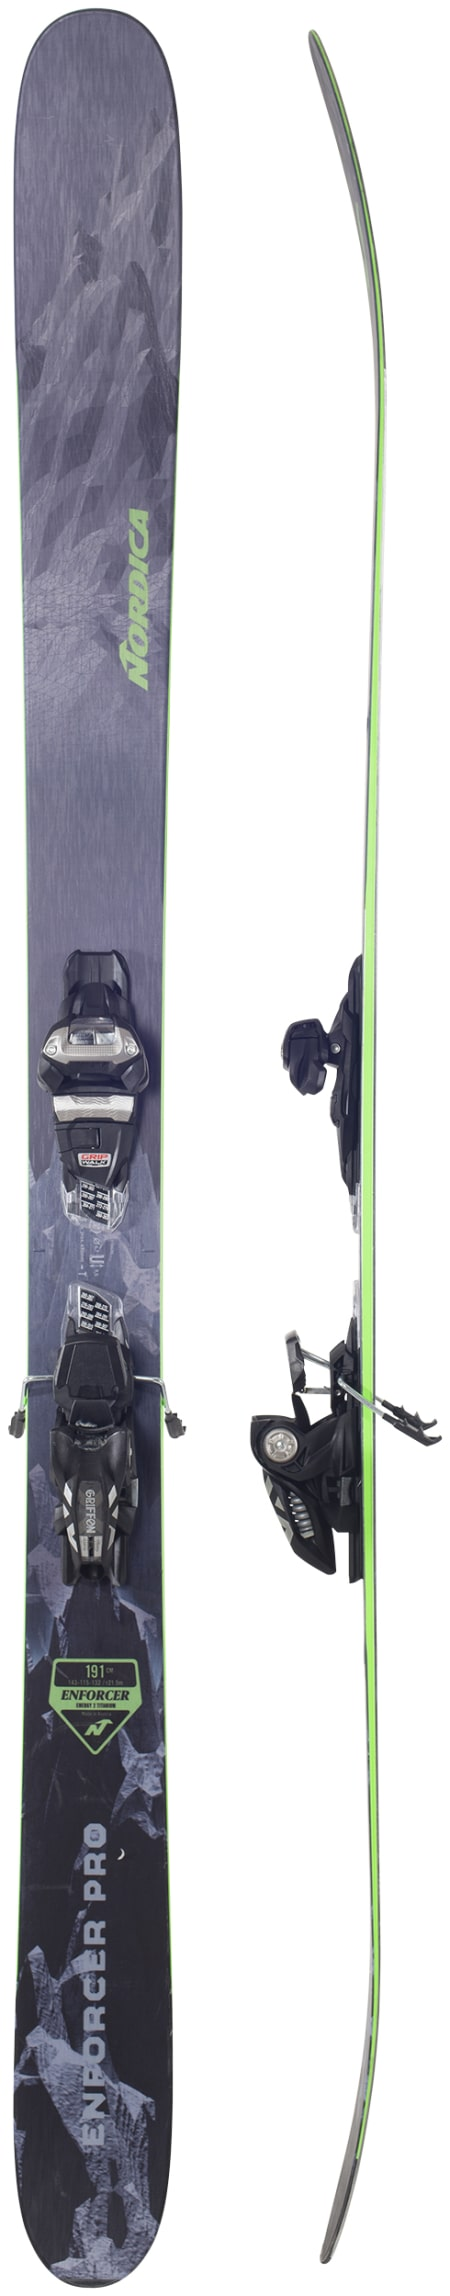 Test av Nordica Enforcer Pro 115